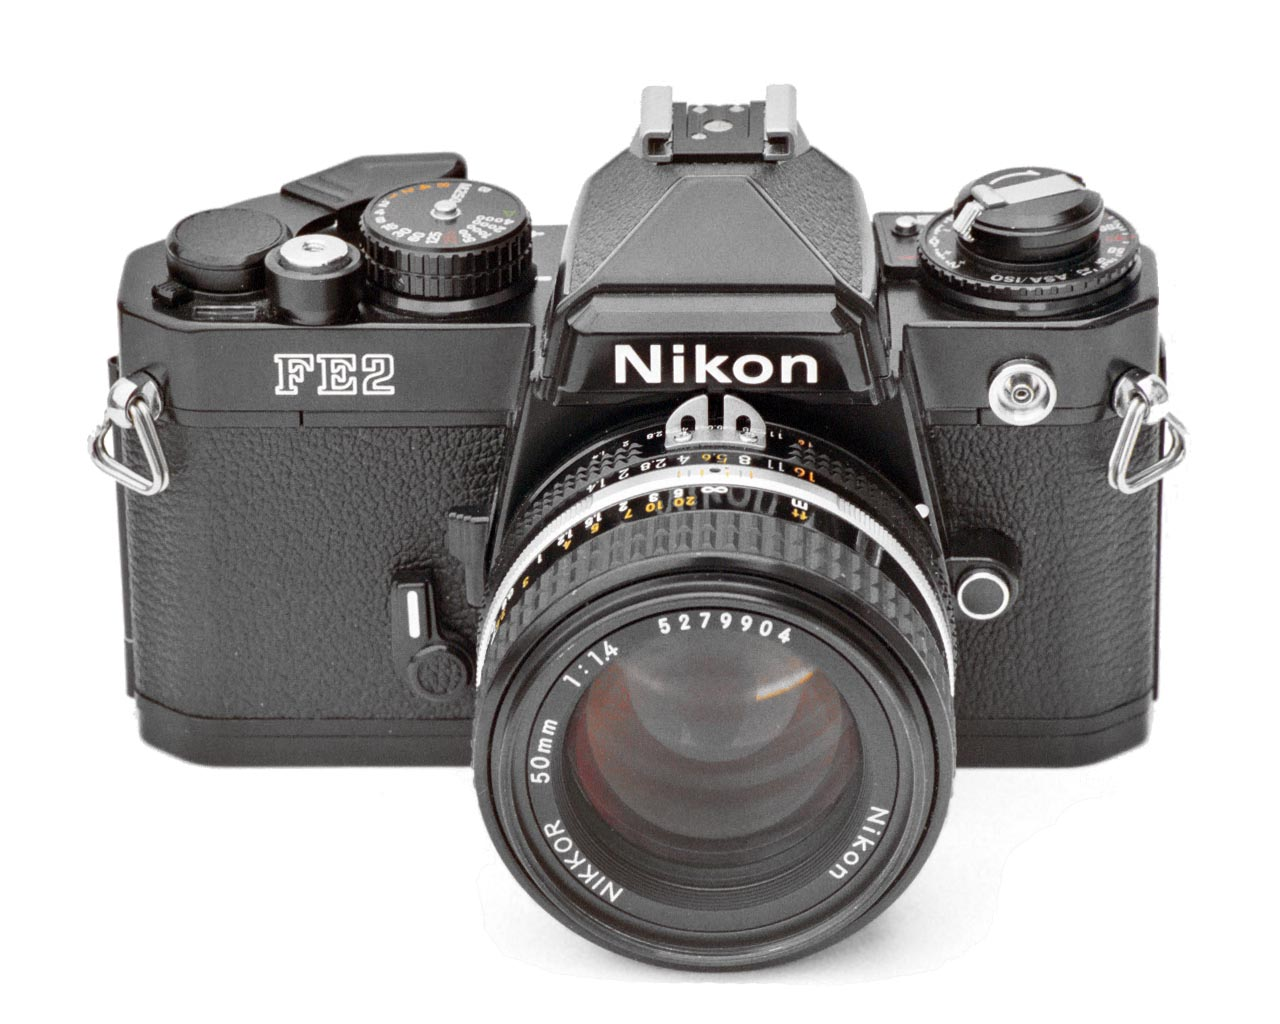 I worked in a camera shop from the age of 15 and always loved the manual cameras (Pentax K1000 was my first and I too had an Olympus OM-1 that I loved) ...